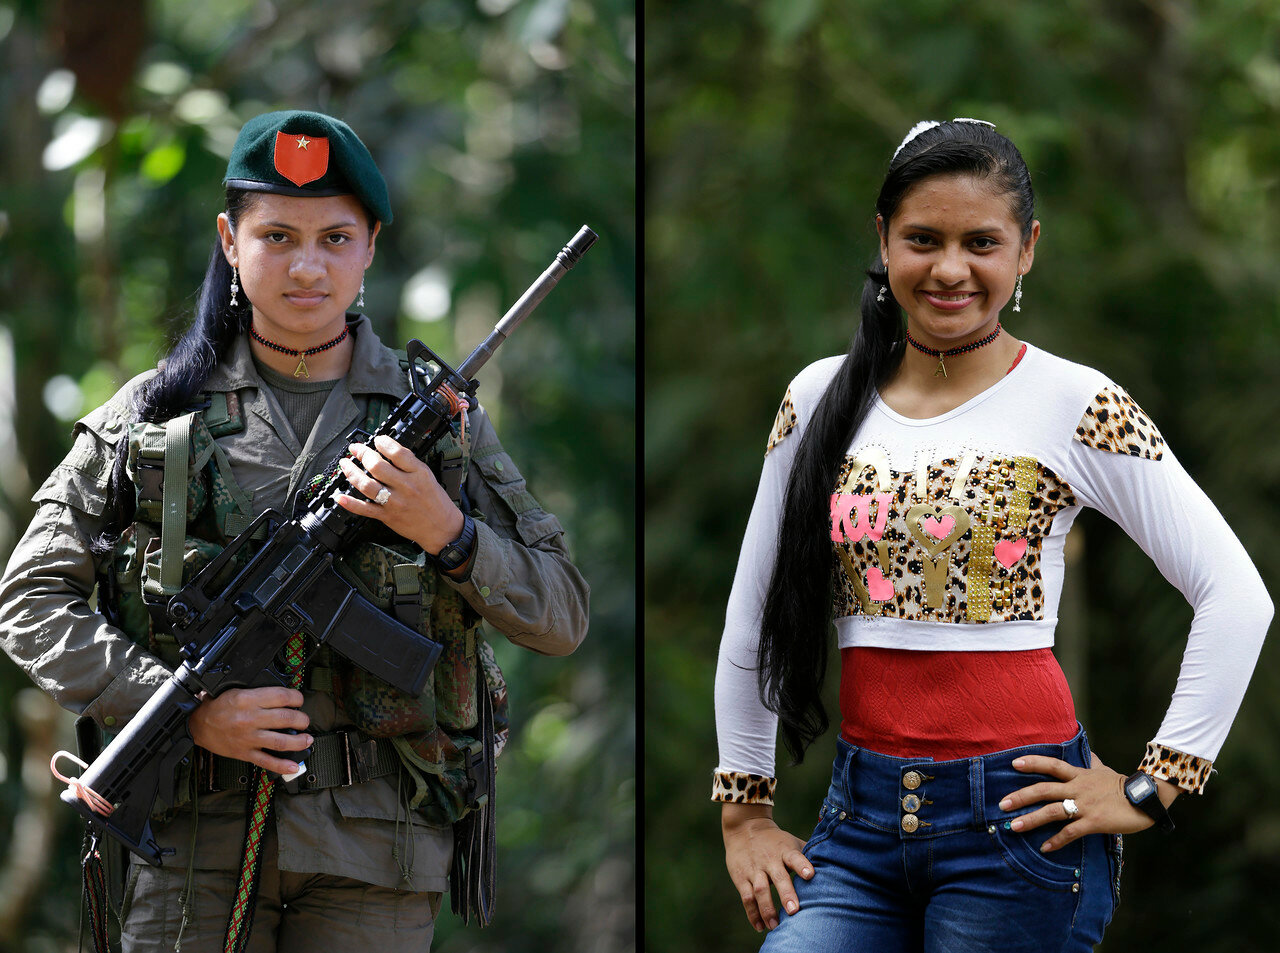 Colombia Rebel Portraits Photo Gallery